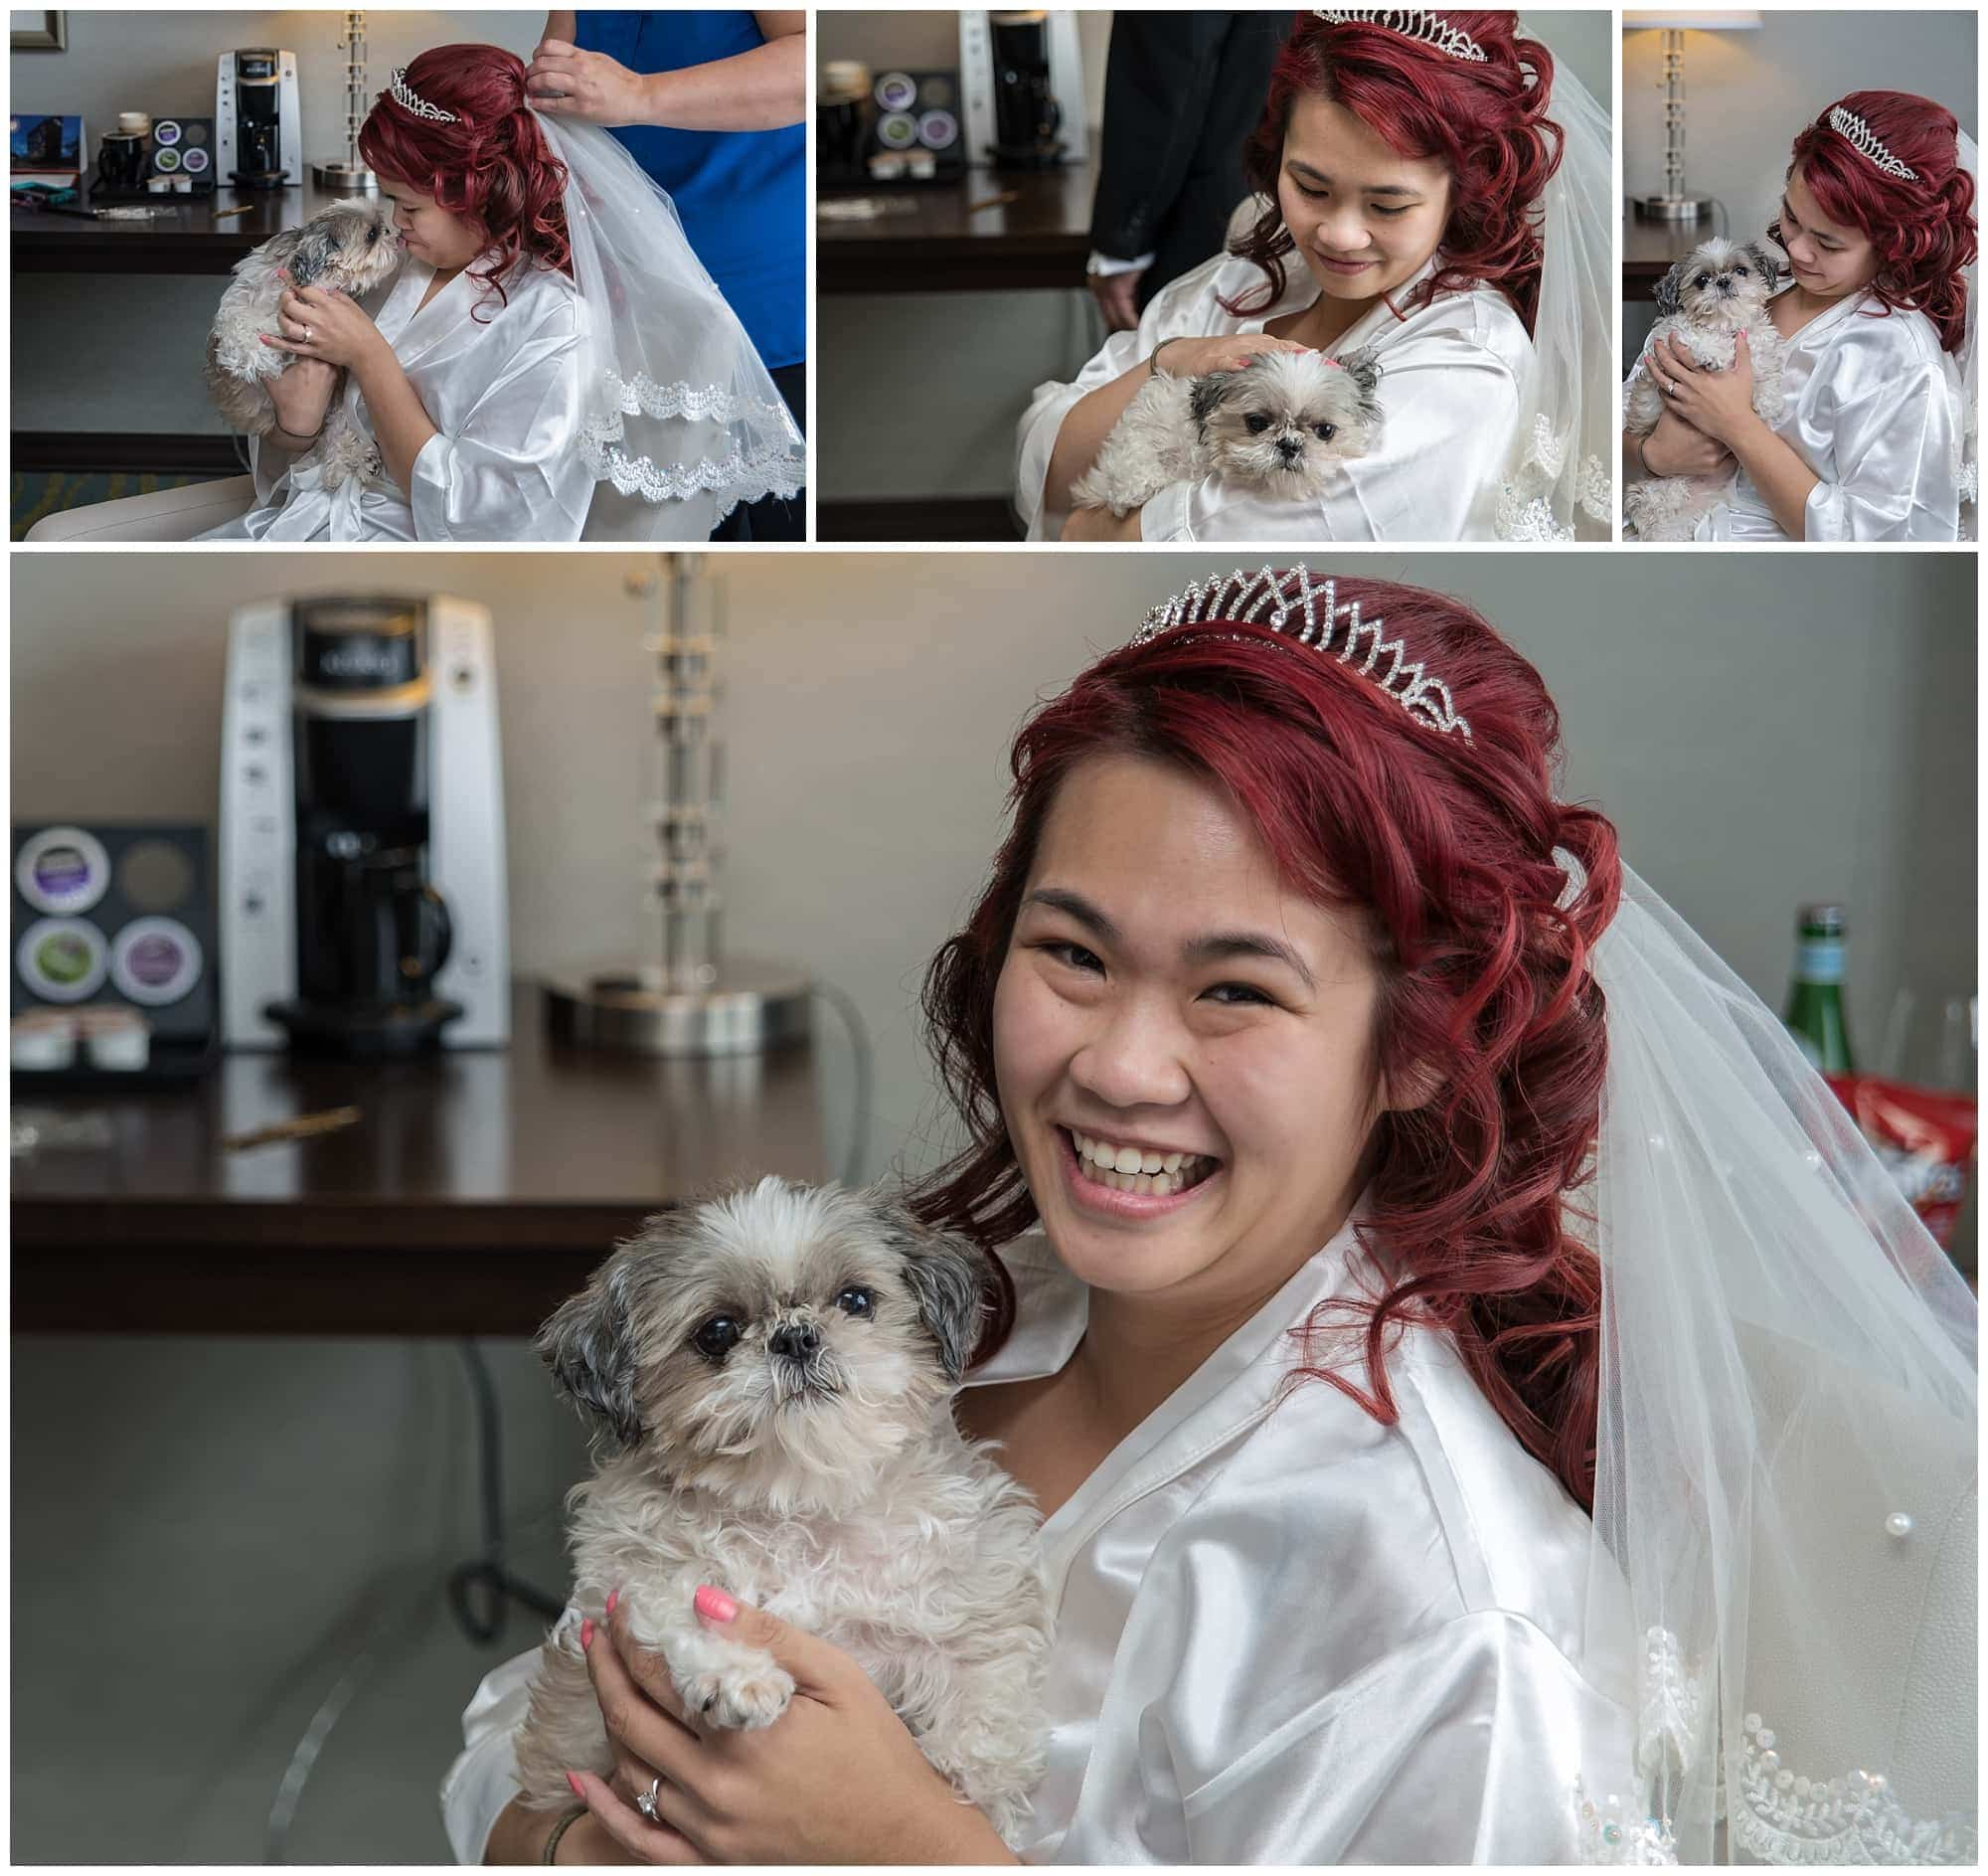 The bride shows off her little dog who will be with her during the wedding at the Atlantica Hotel in Halifax.